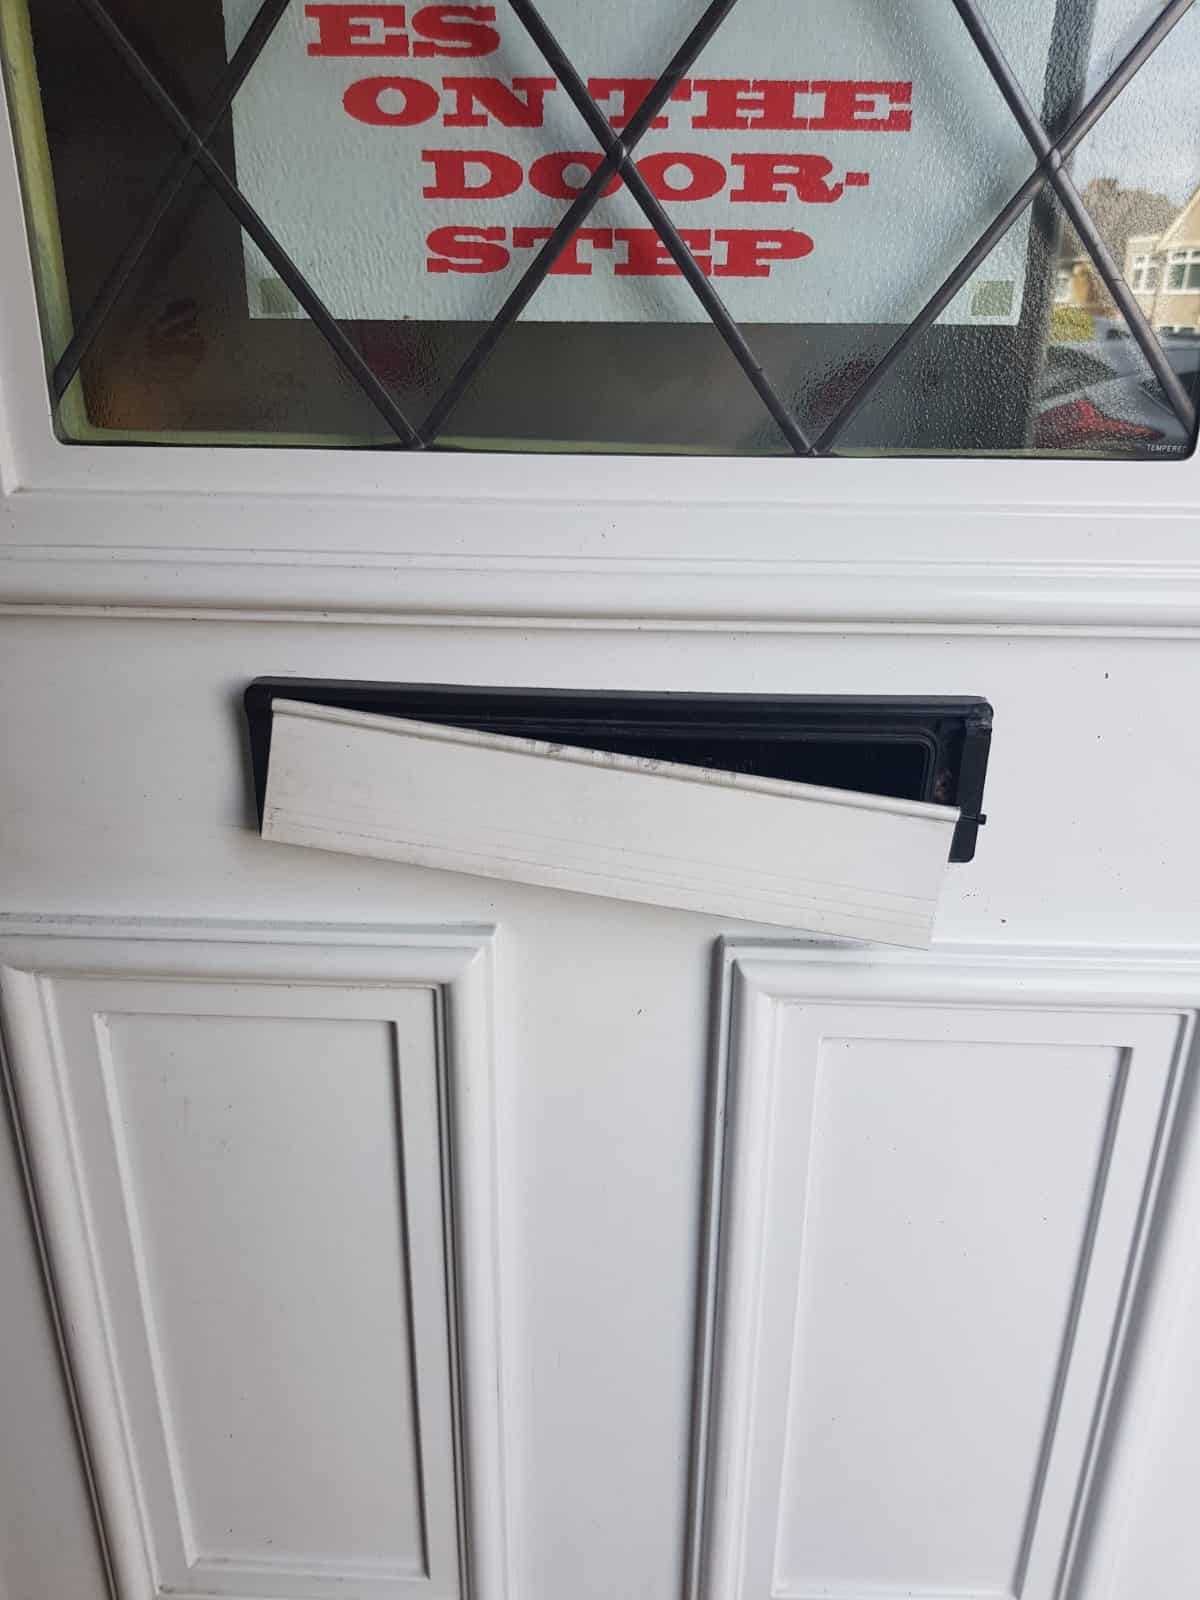 UPVC letter box broken